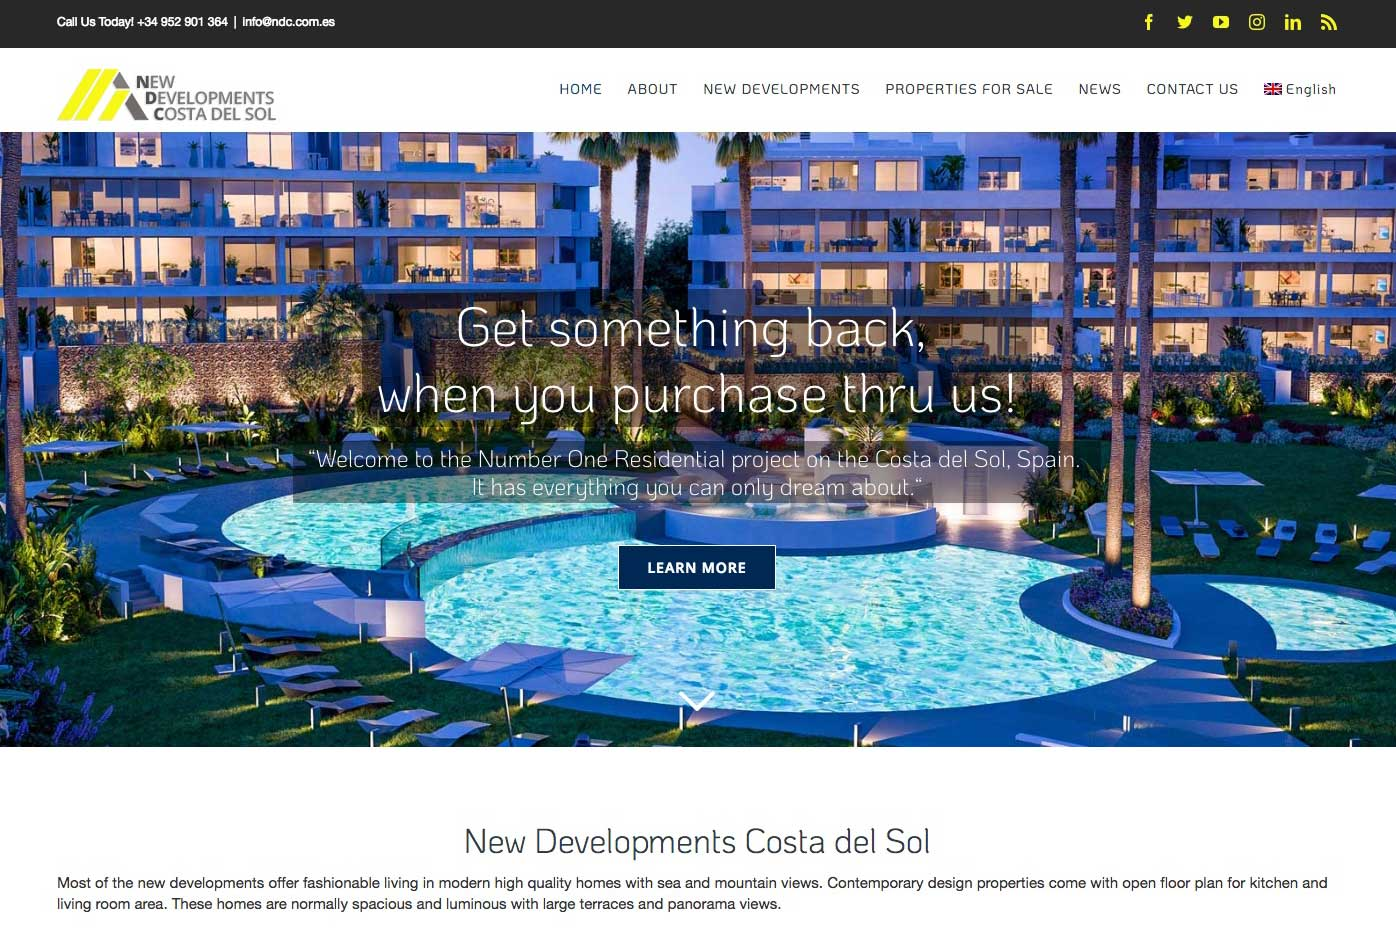 new-developments-costa-del-sol-real-estate-costa-del-sol-new-developments